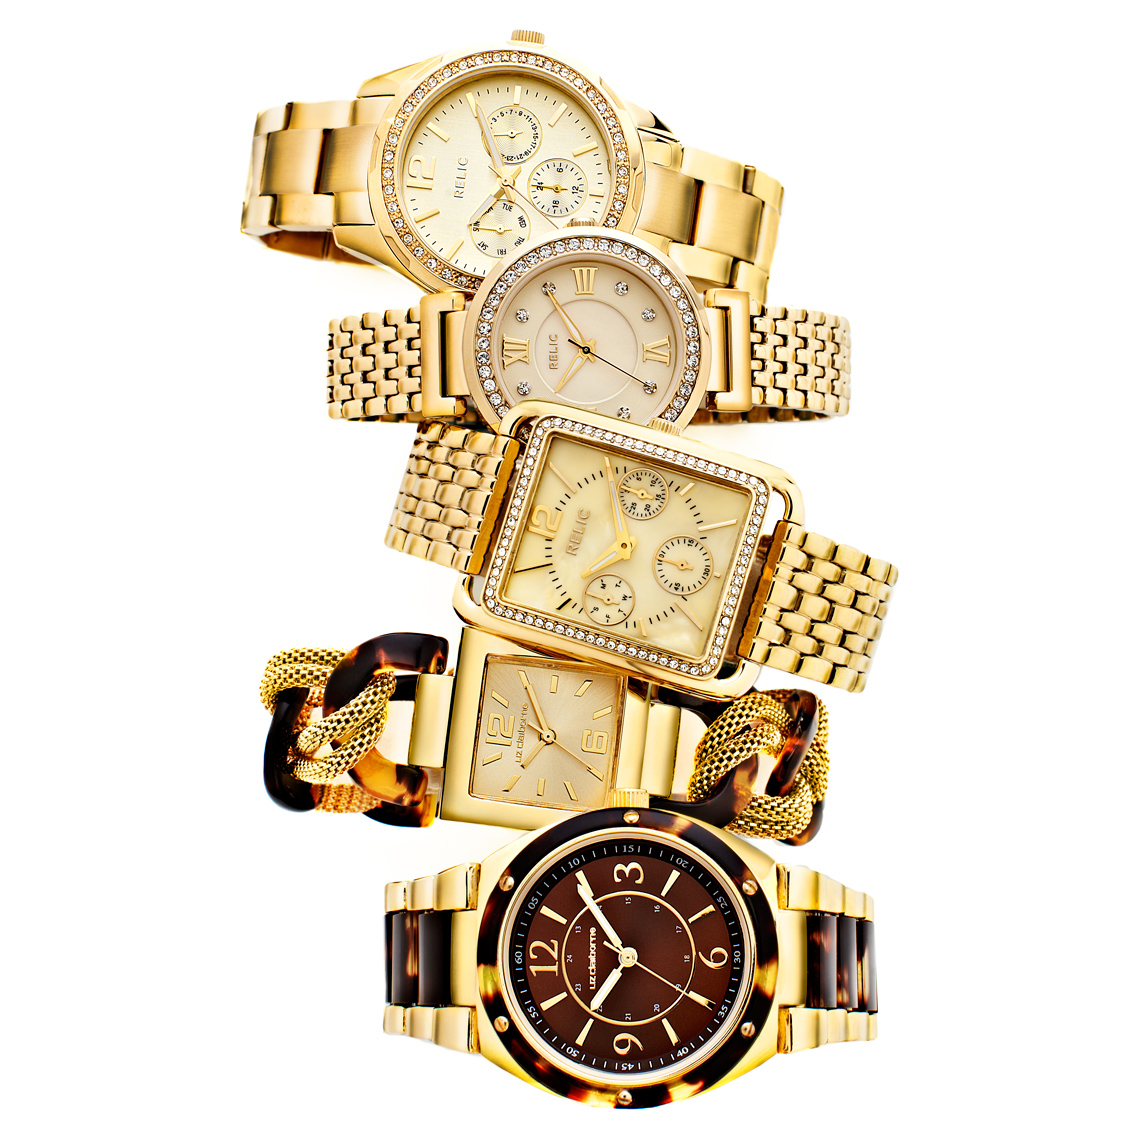 gold watches.jpg